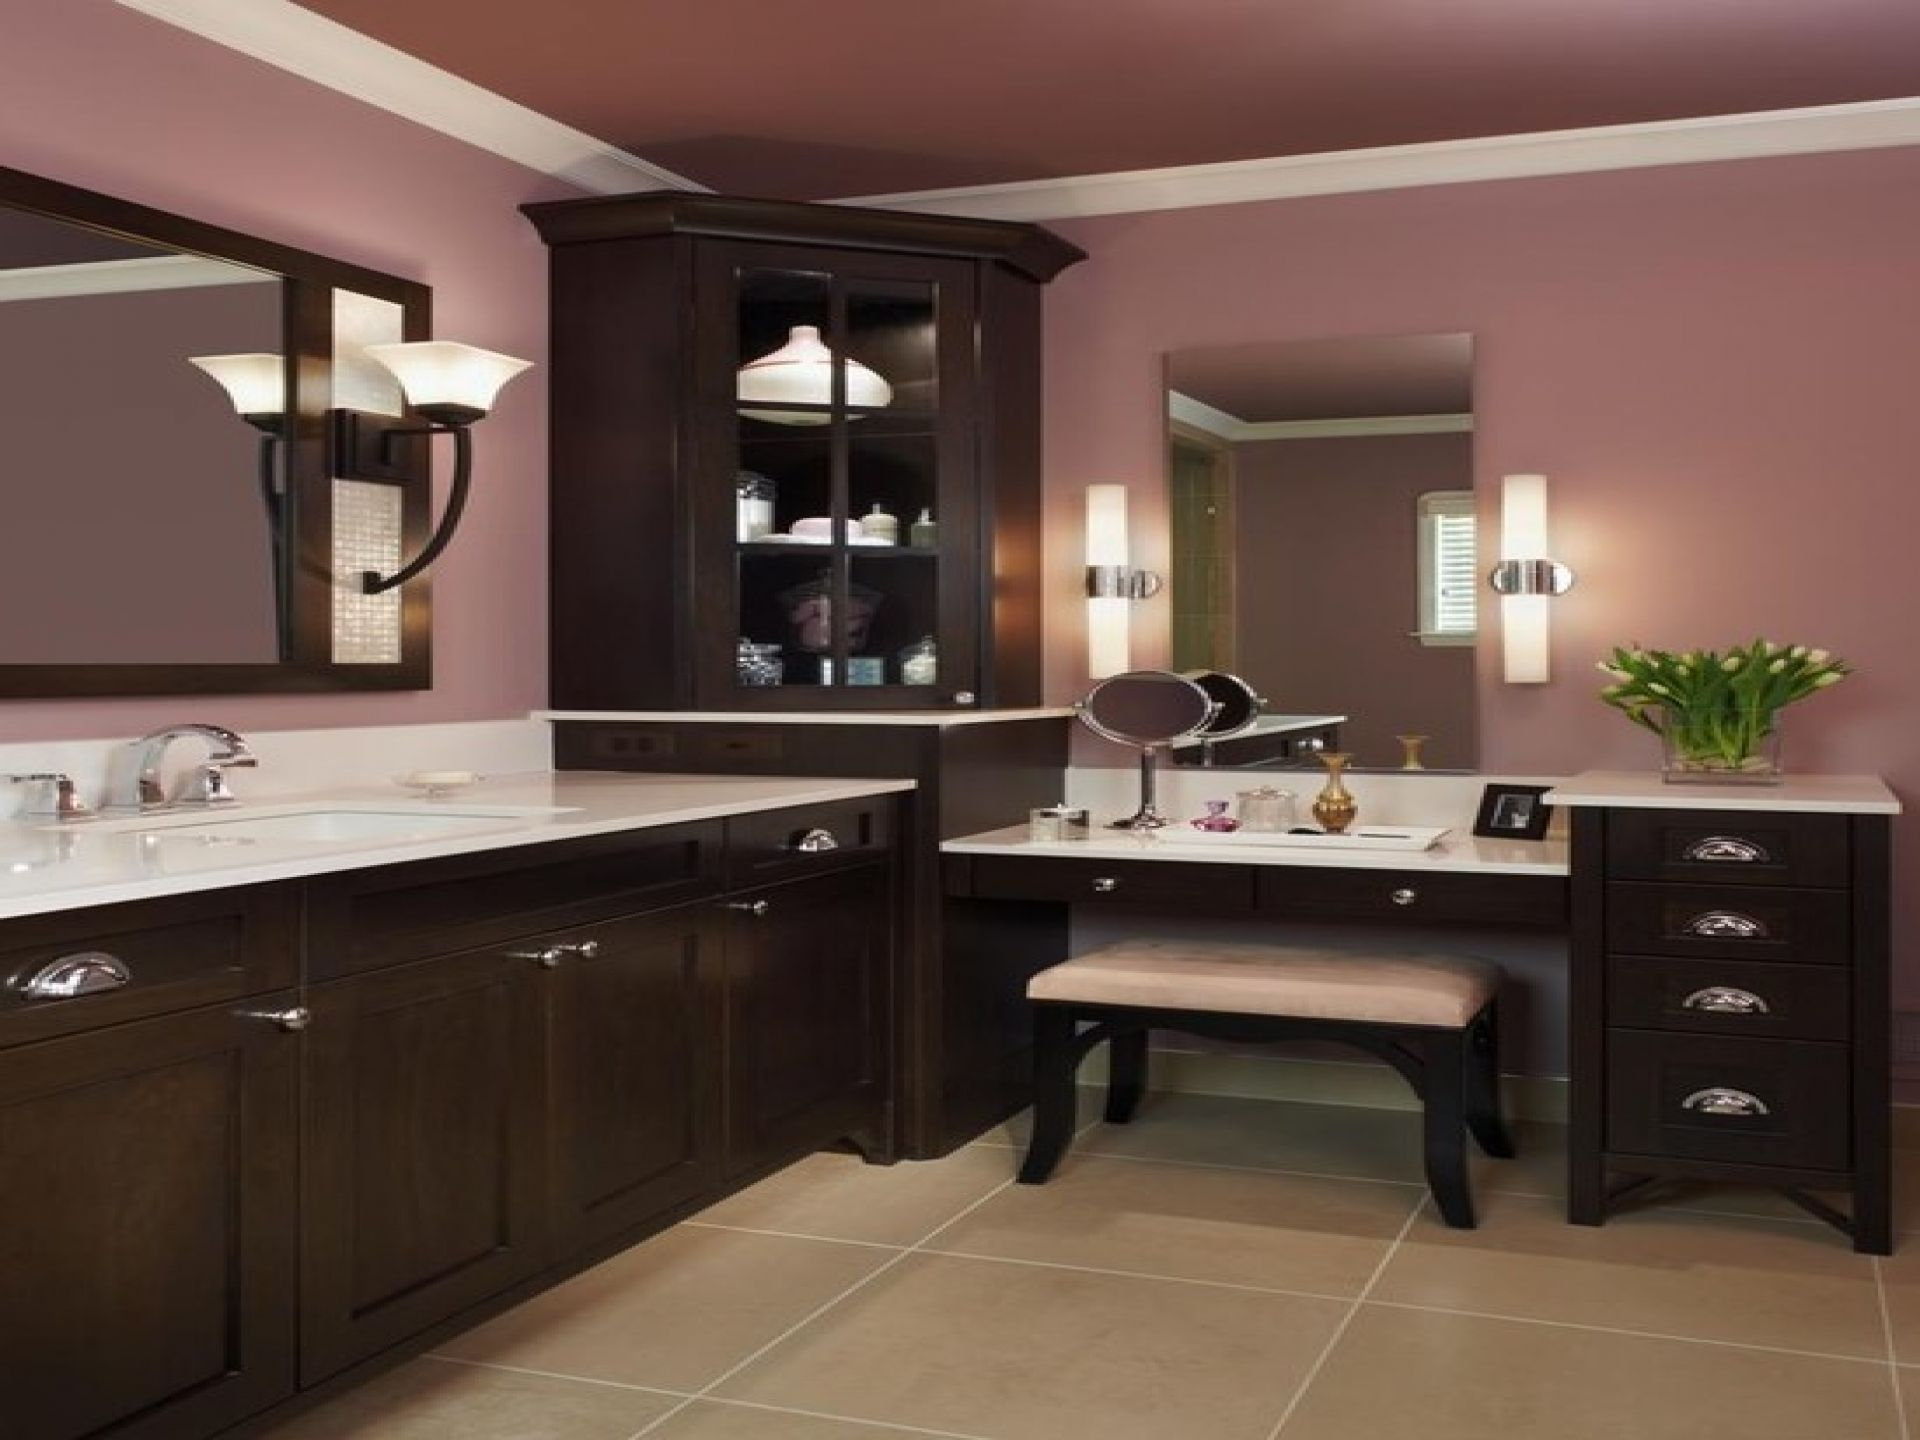 Modern makeup vanities decor ideas on vanity bench with elegant modern klismos leg for bathroom makeup bedroom design and decor